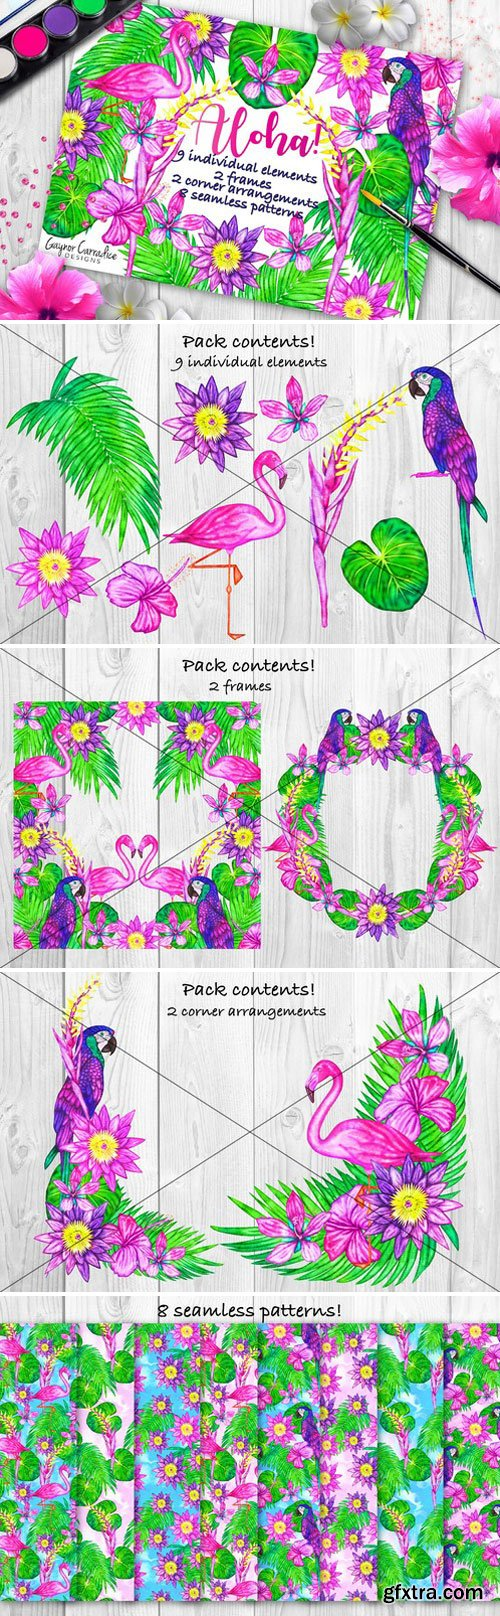 CM - Alloha clipart and seamless patterns 1600764